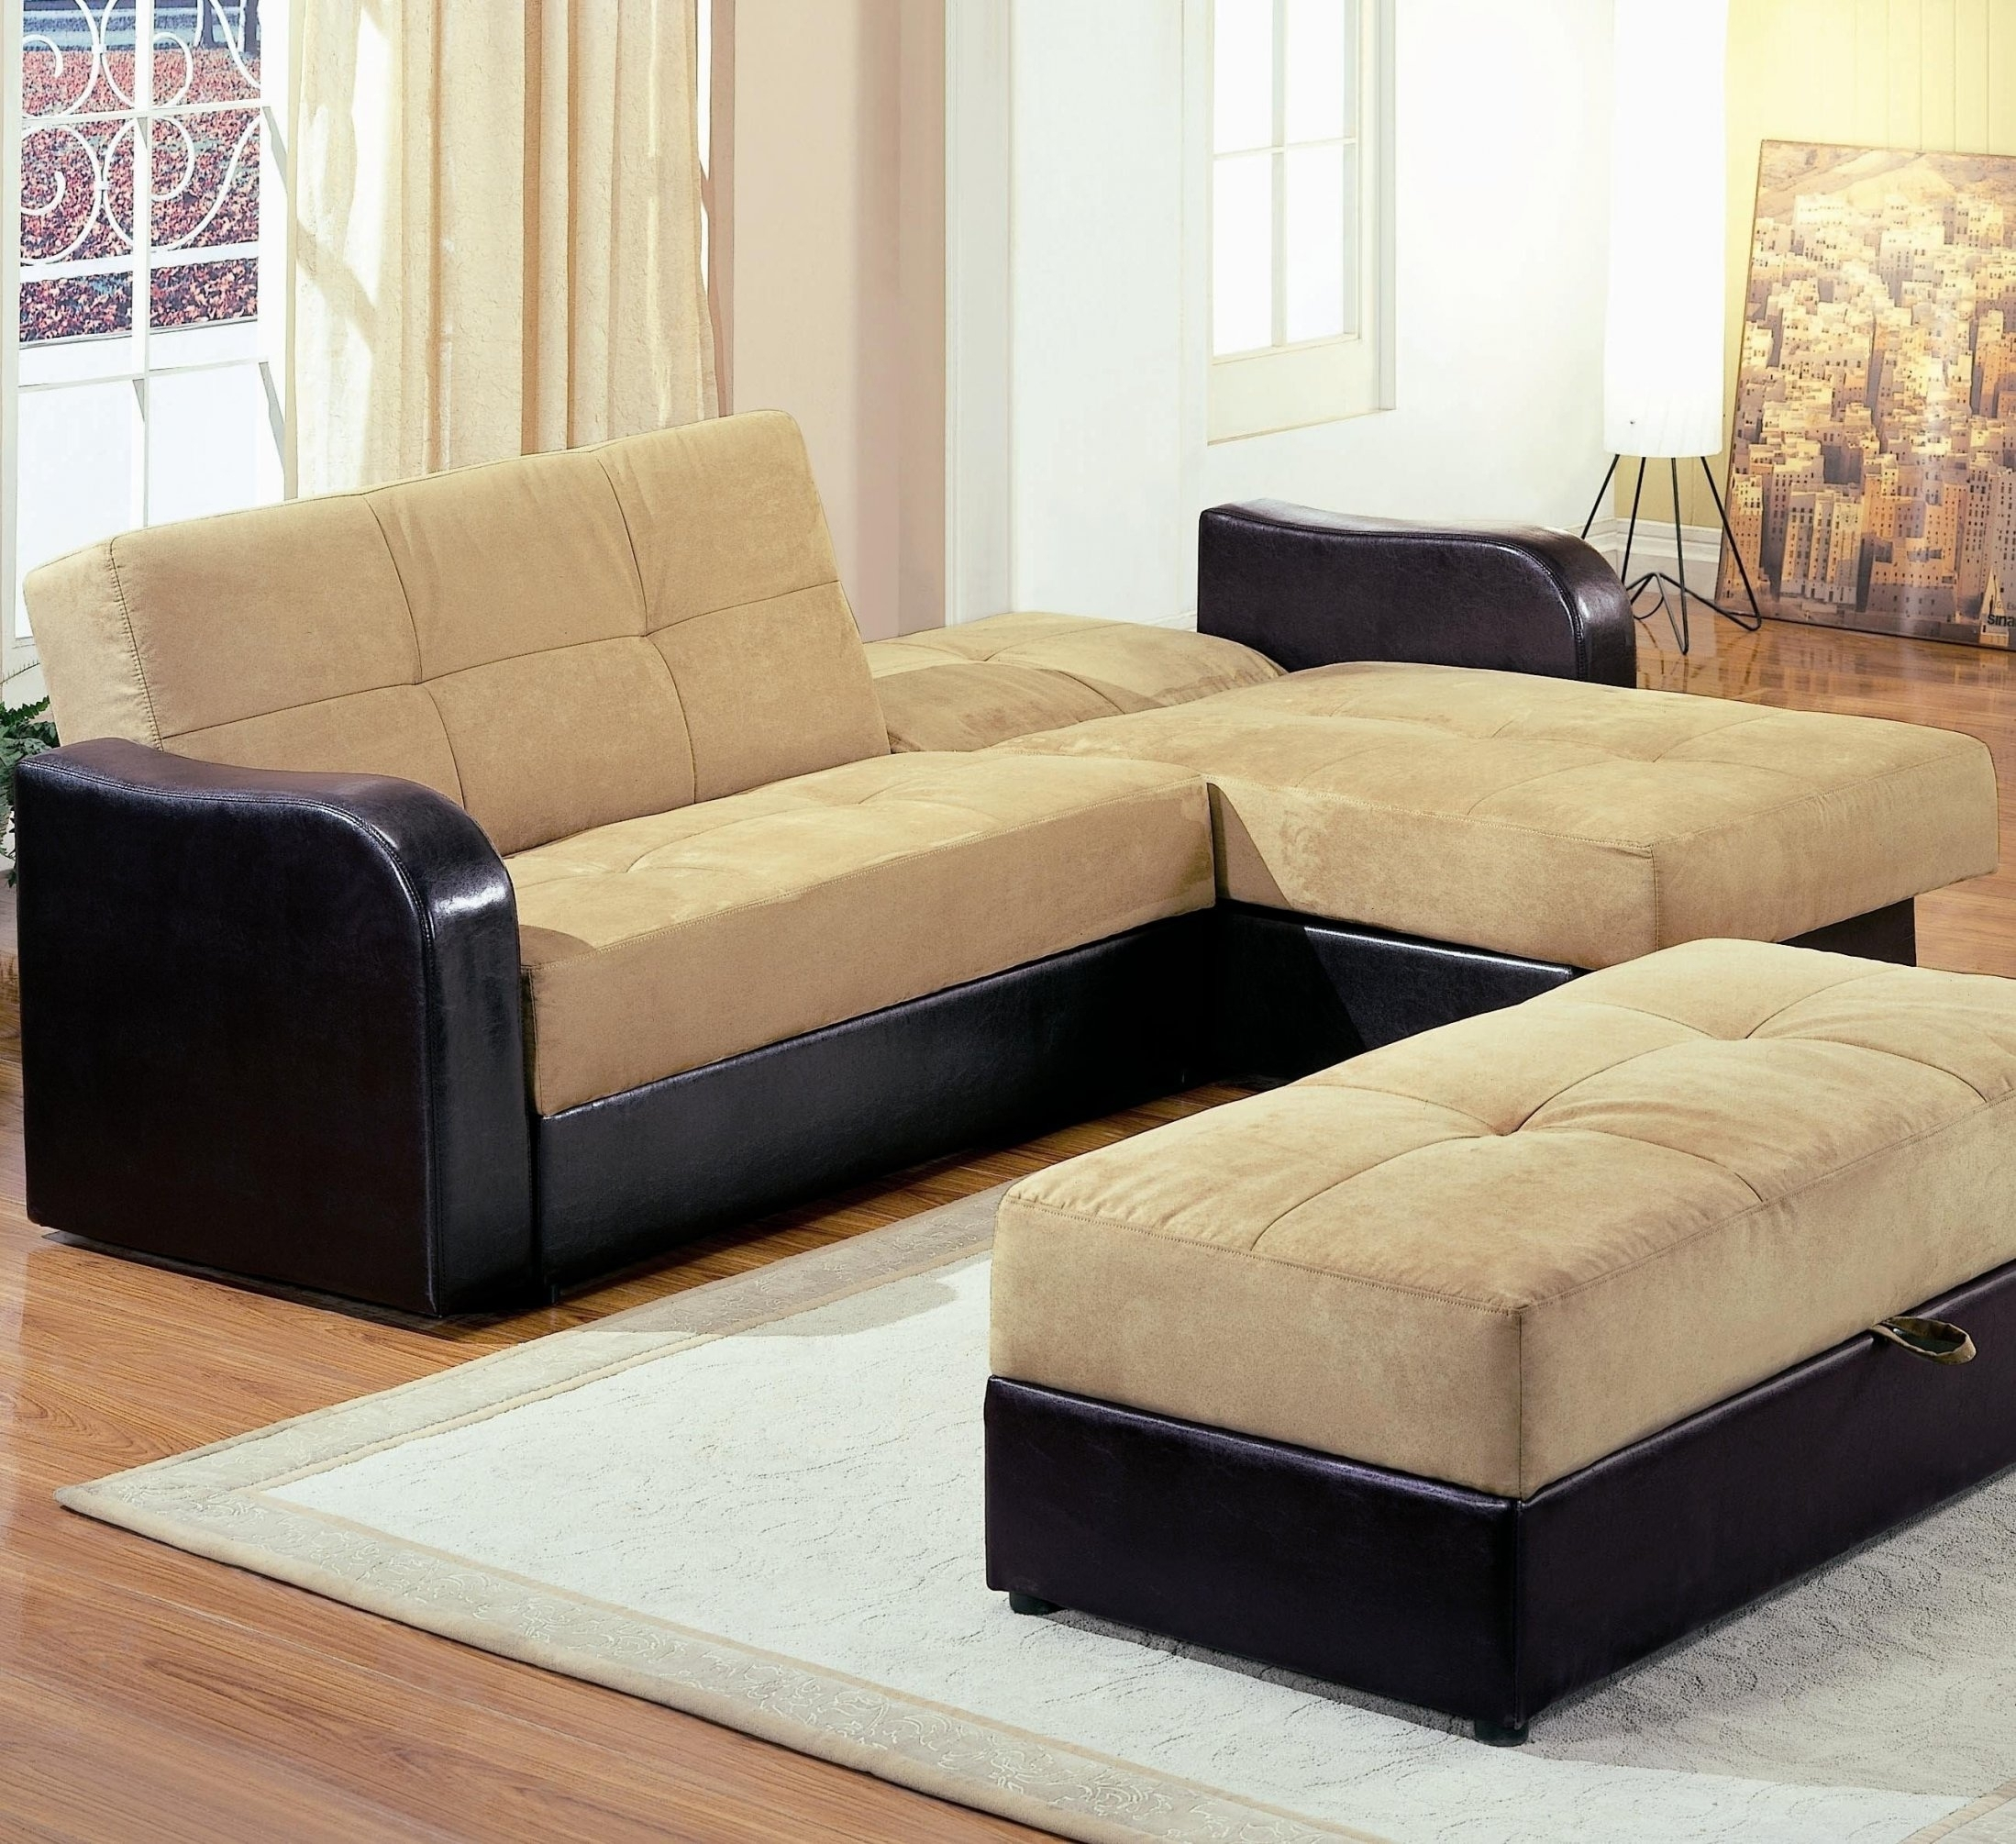 Sectional Sleeper Sofa With Ottoman for Sectional Sleeper Sofas With Ottoman (Image 13 of 15)